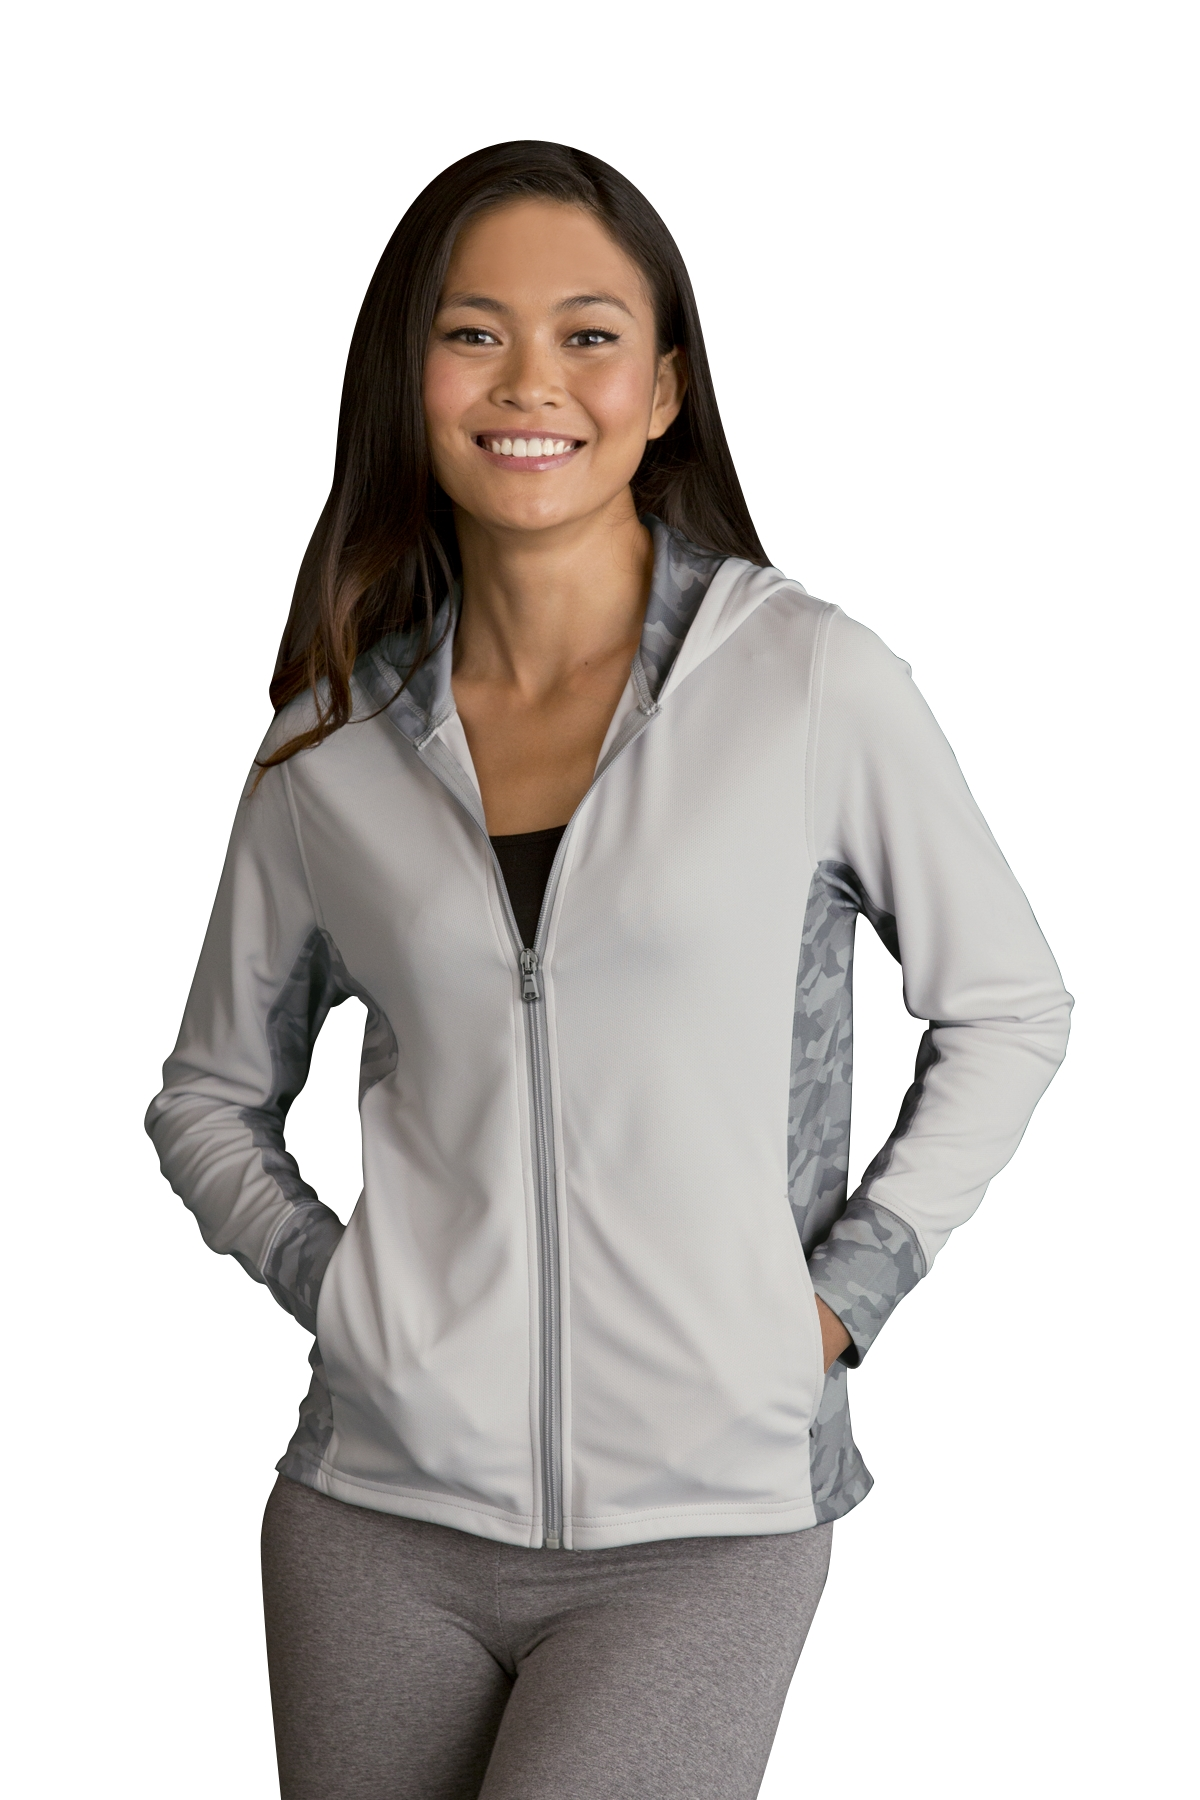 Vansport 3426 - Women's Pro Camo Block Full-Zip Hoodie